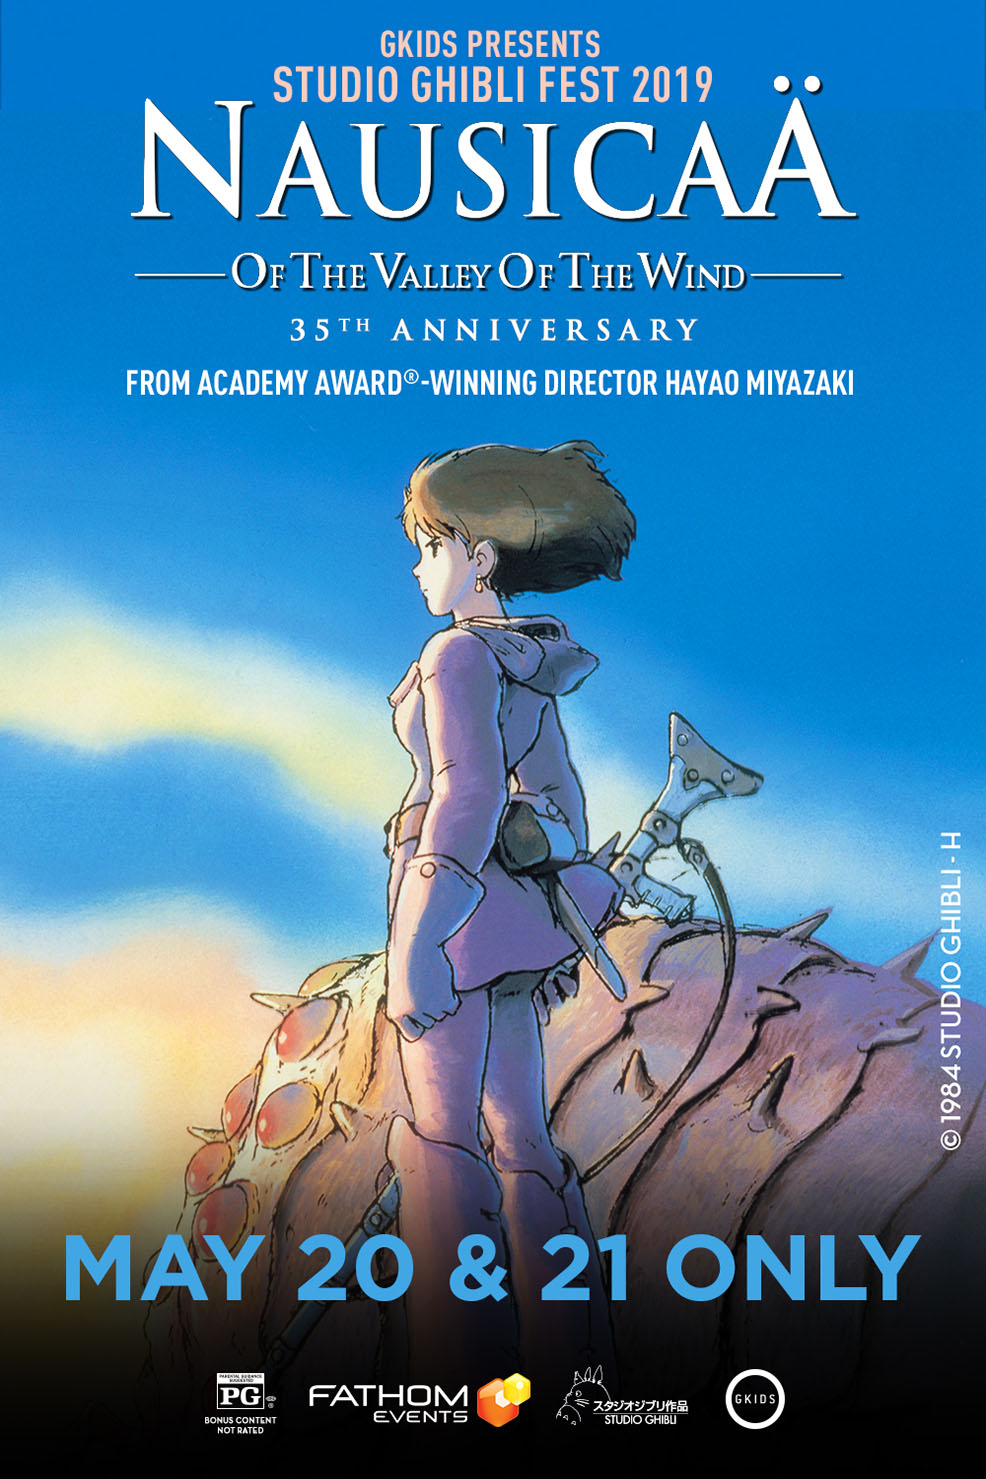 Nausicaa of the Valley of the Wind-DBEN Poster